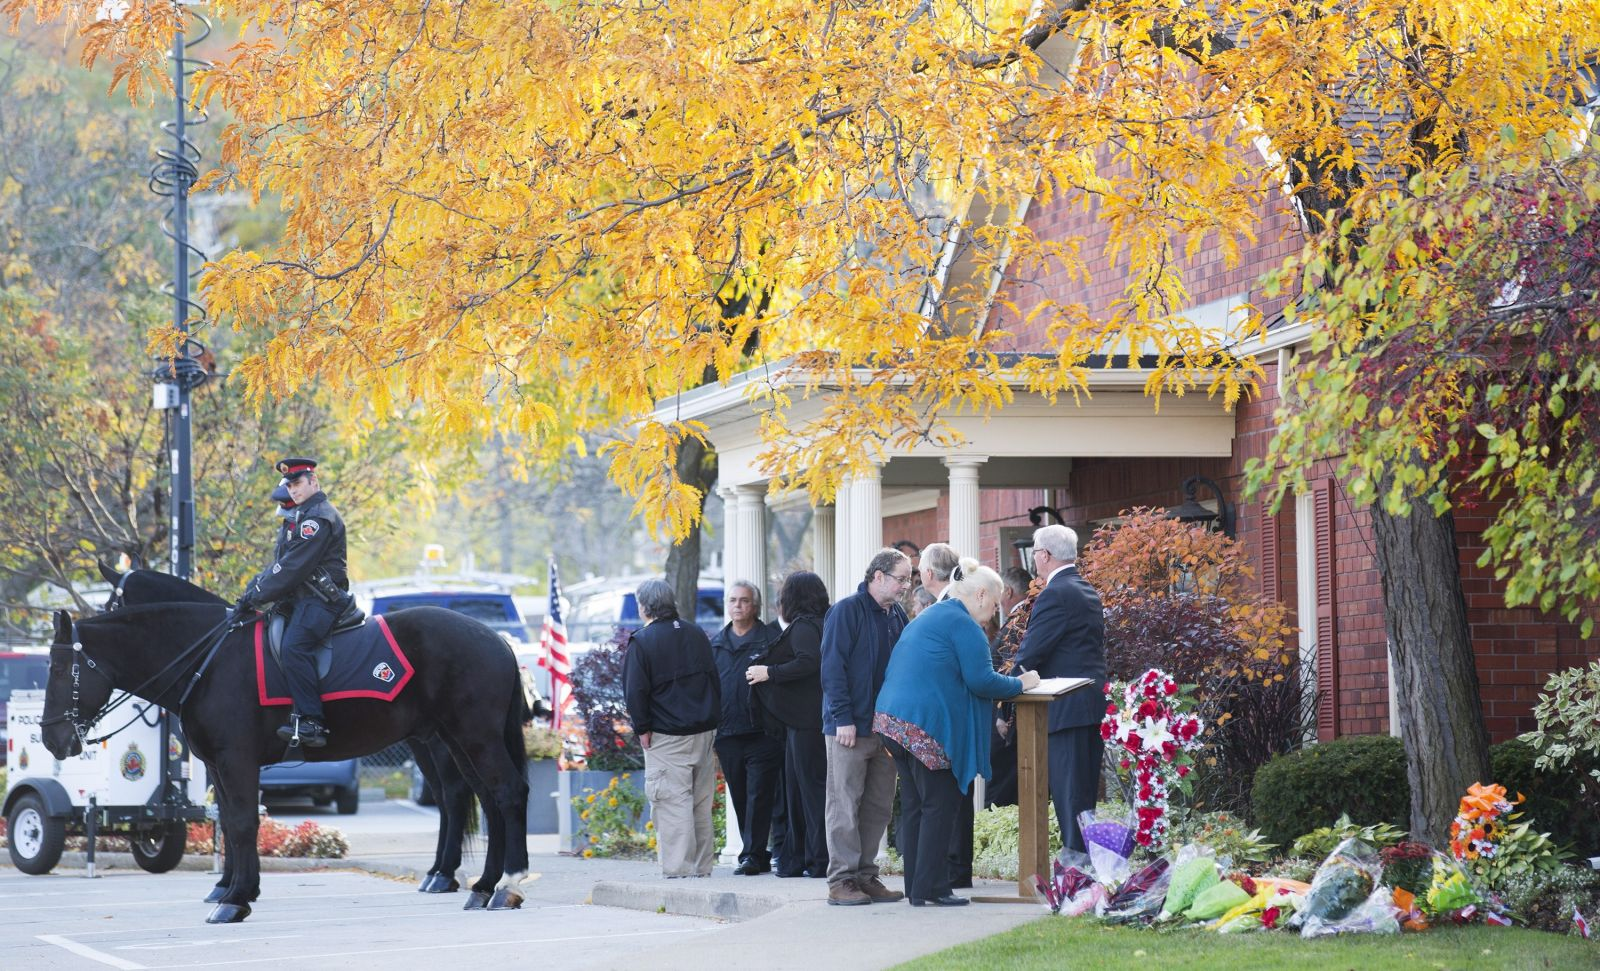 Росперсонал отзывы, Hamilton, ontario, Canada, people sign A book Of condolences outside The Markey Dermody Funeral Home